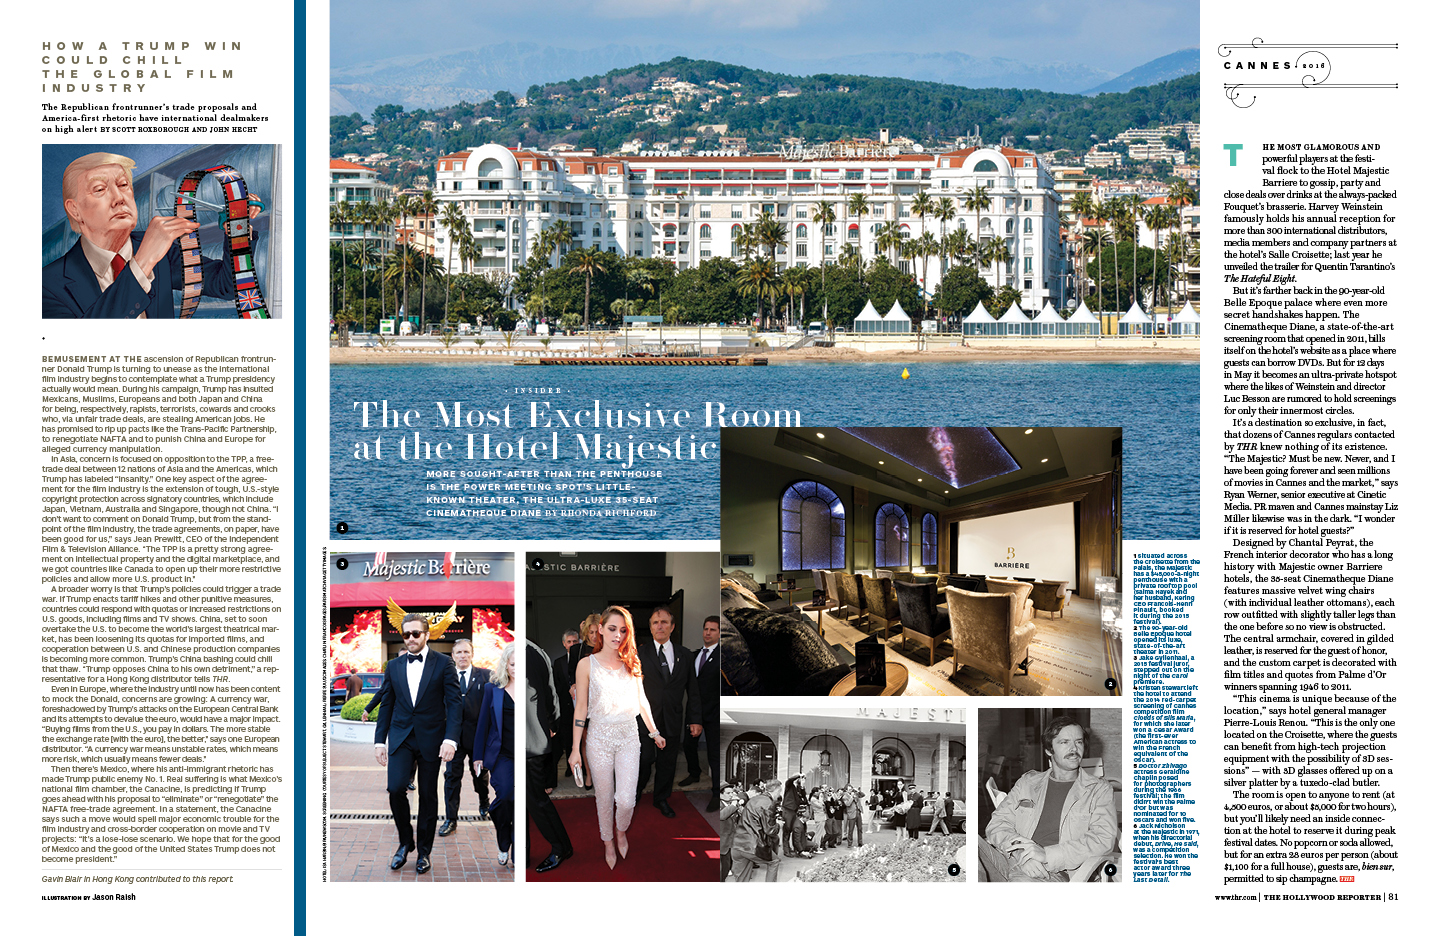 Cannes 2016 / The Hollywood Reporter / 5.18.16 / kelsey stefanson / art direction + graphic design / yeskelsey.com